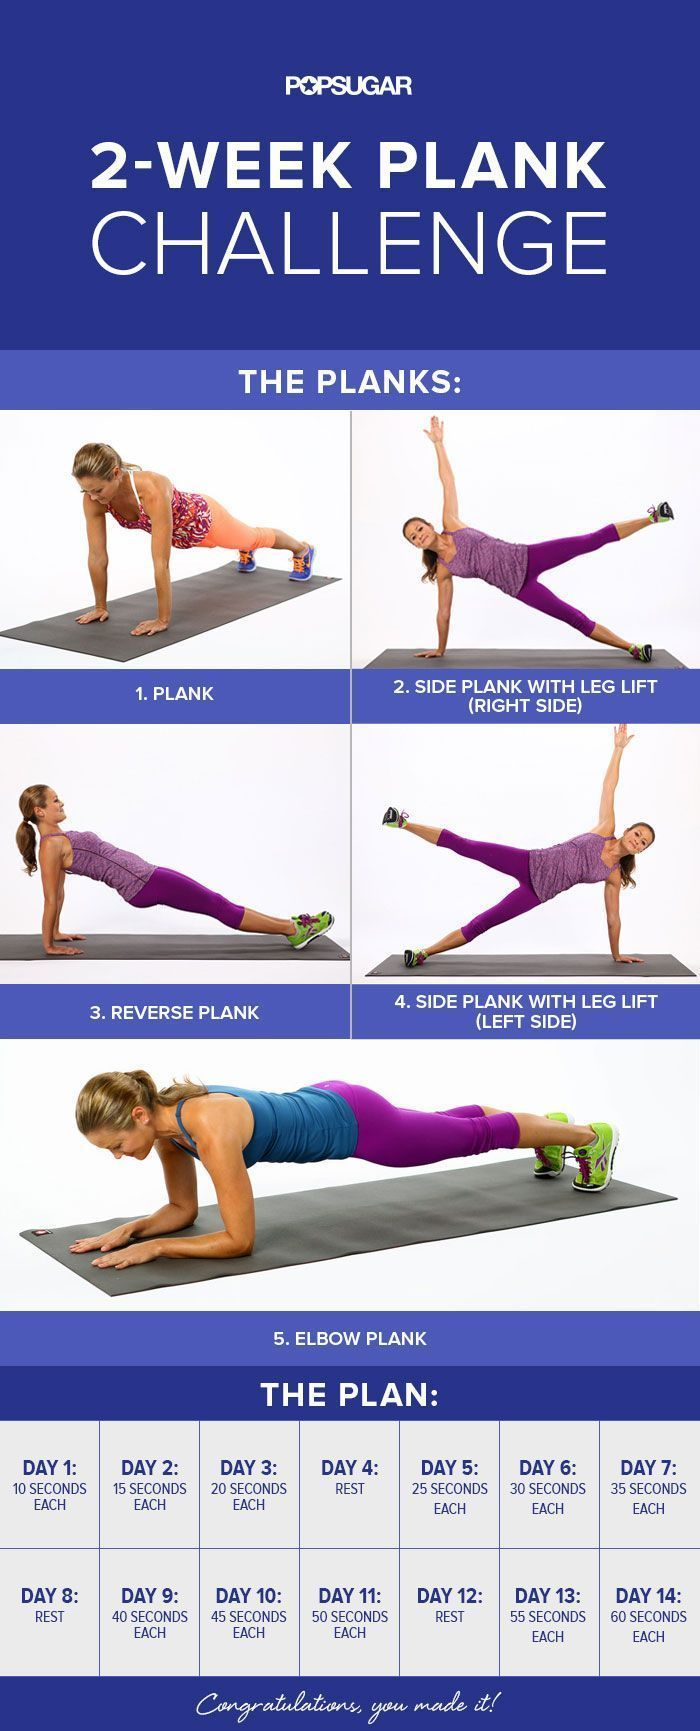 Looking for a new total-body workout? This 2-week plank challenge will put your abs, arms, back, and obliques to work.